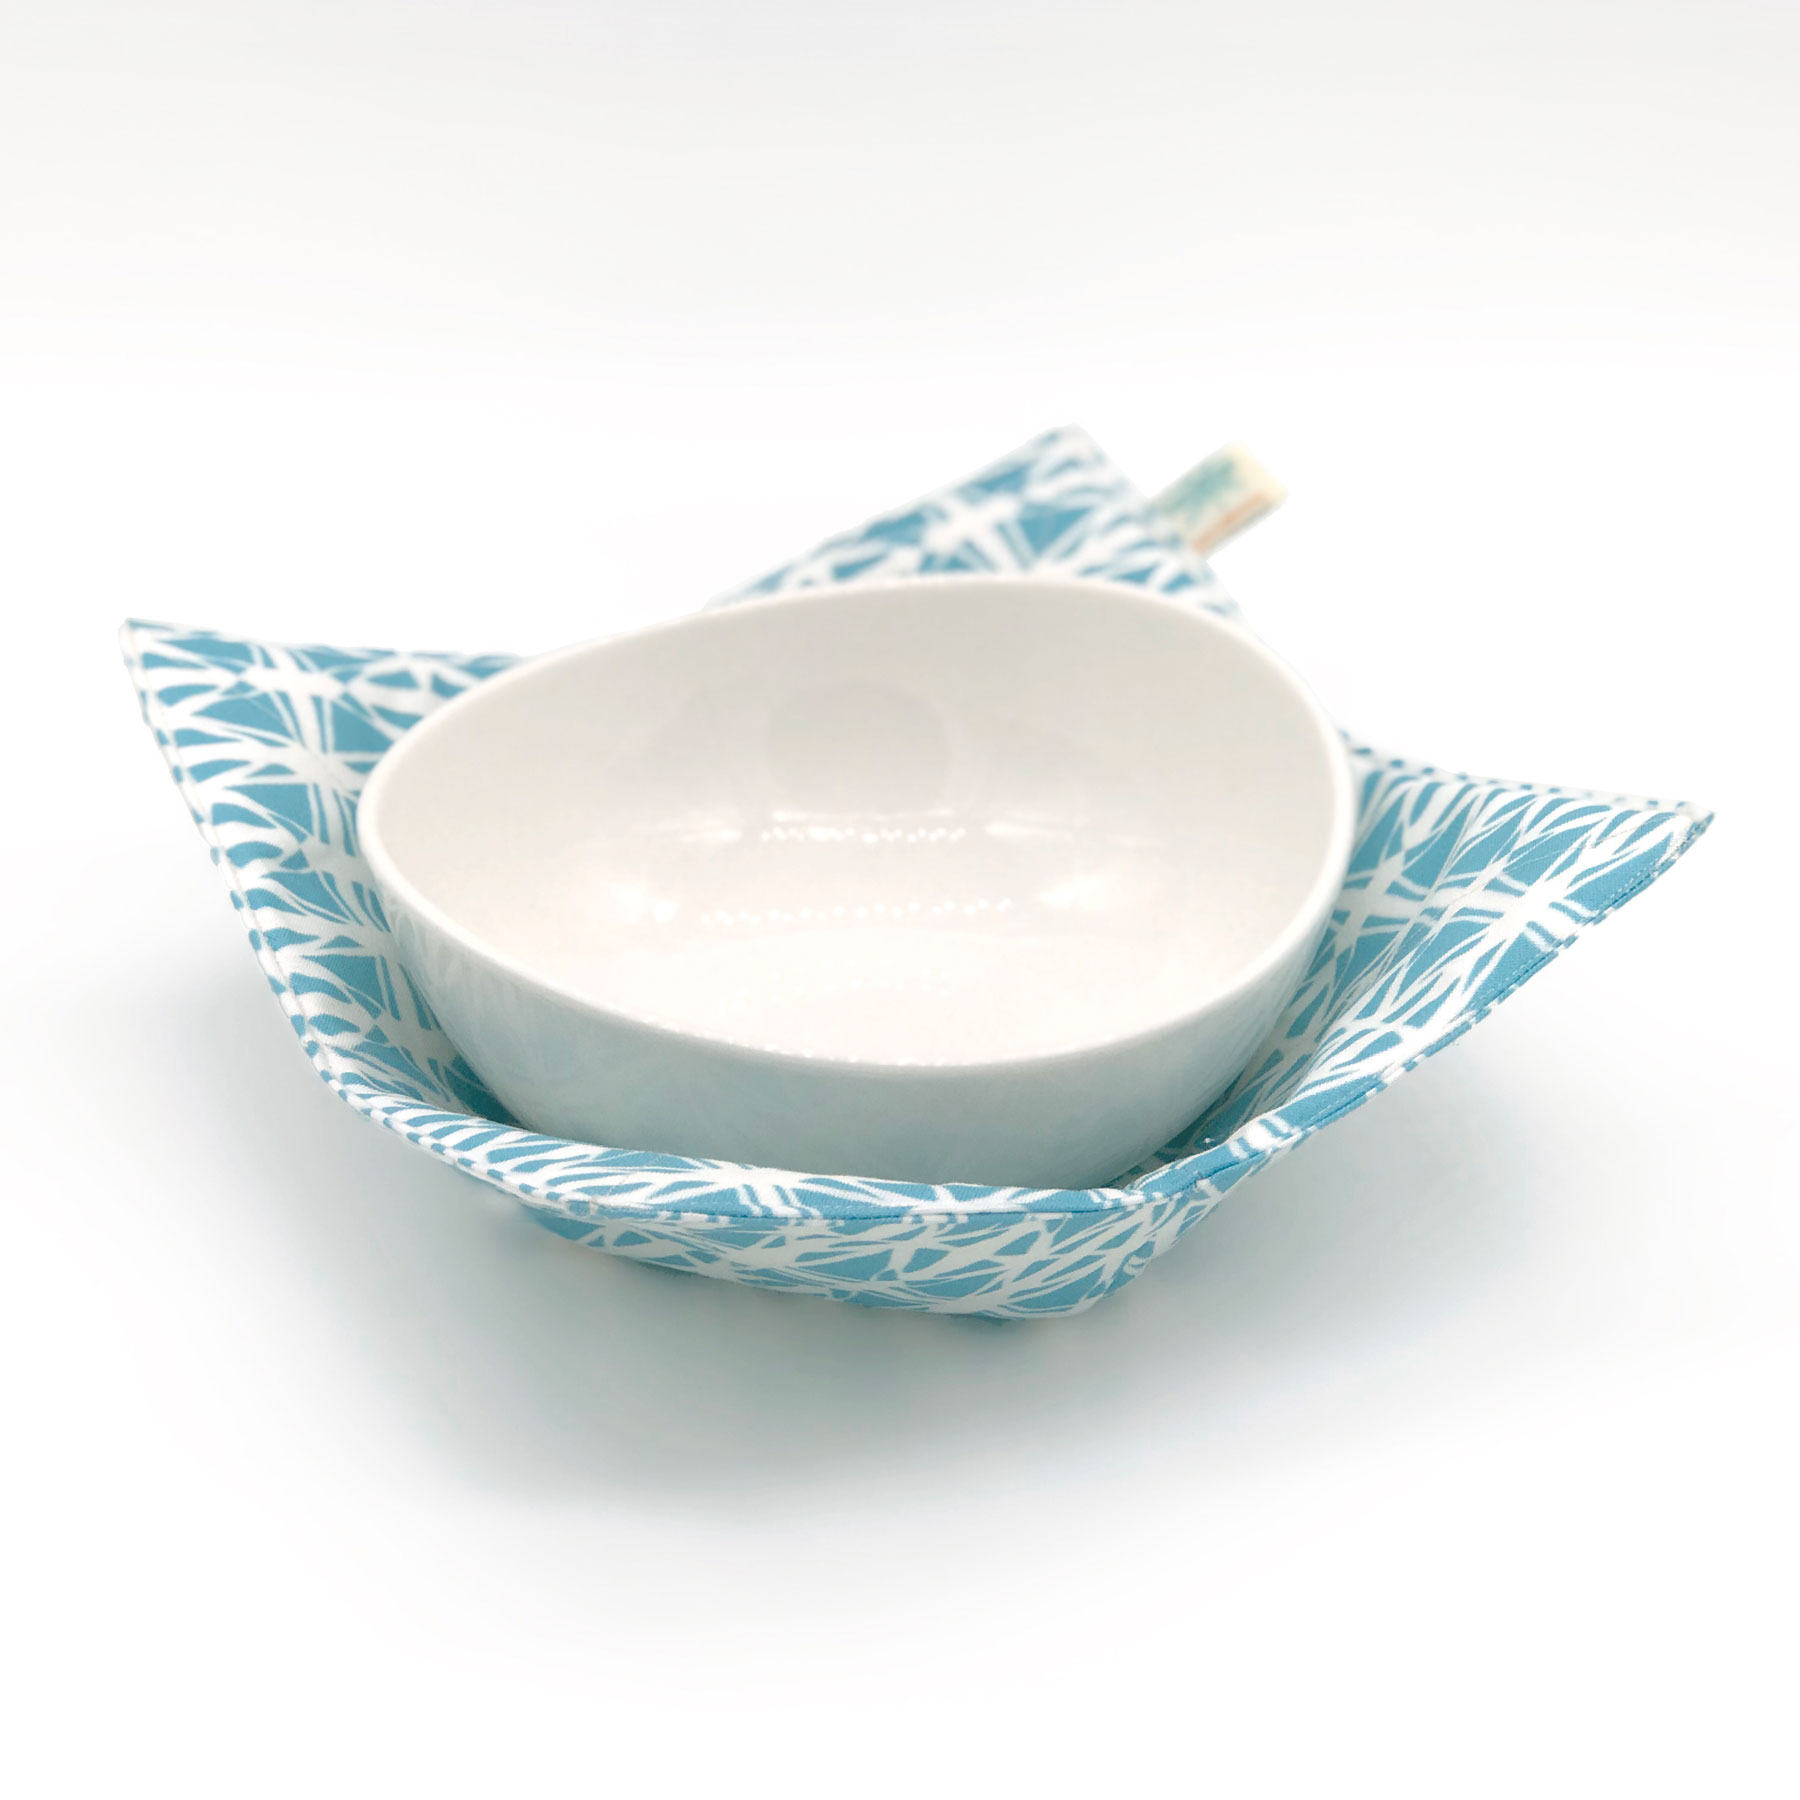 6 Clever Items (11/20/20) - Shawn Sargent Designs Microwaveable Bowl in Aqua Stained Glass